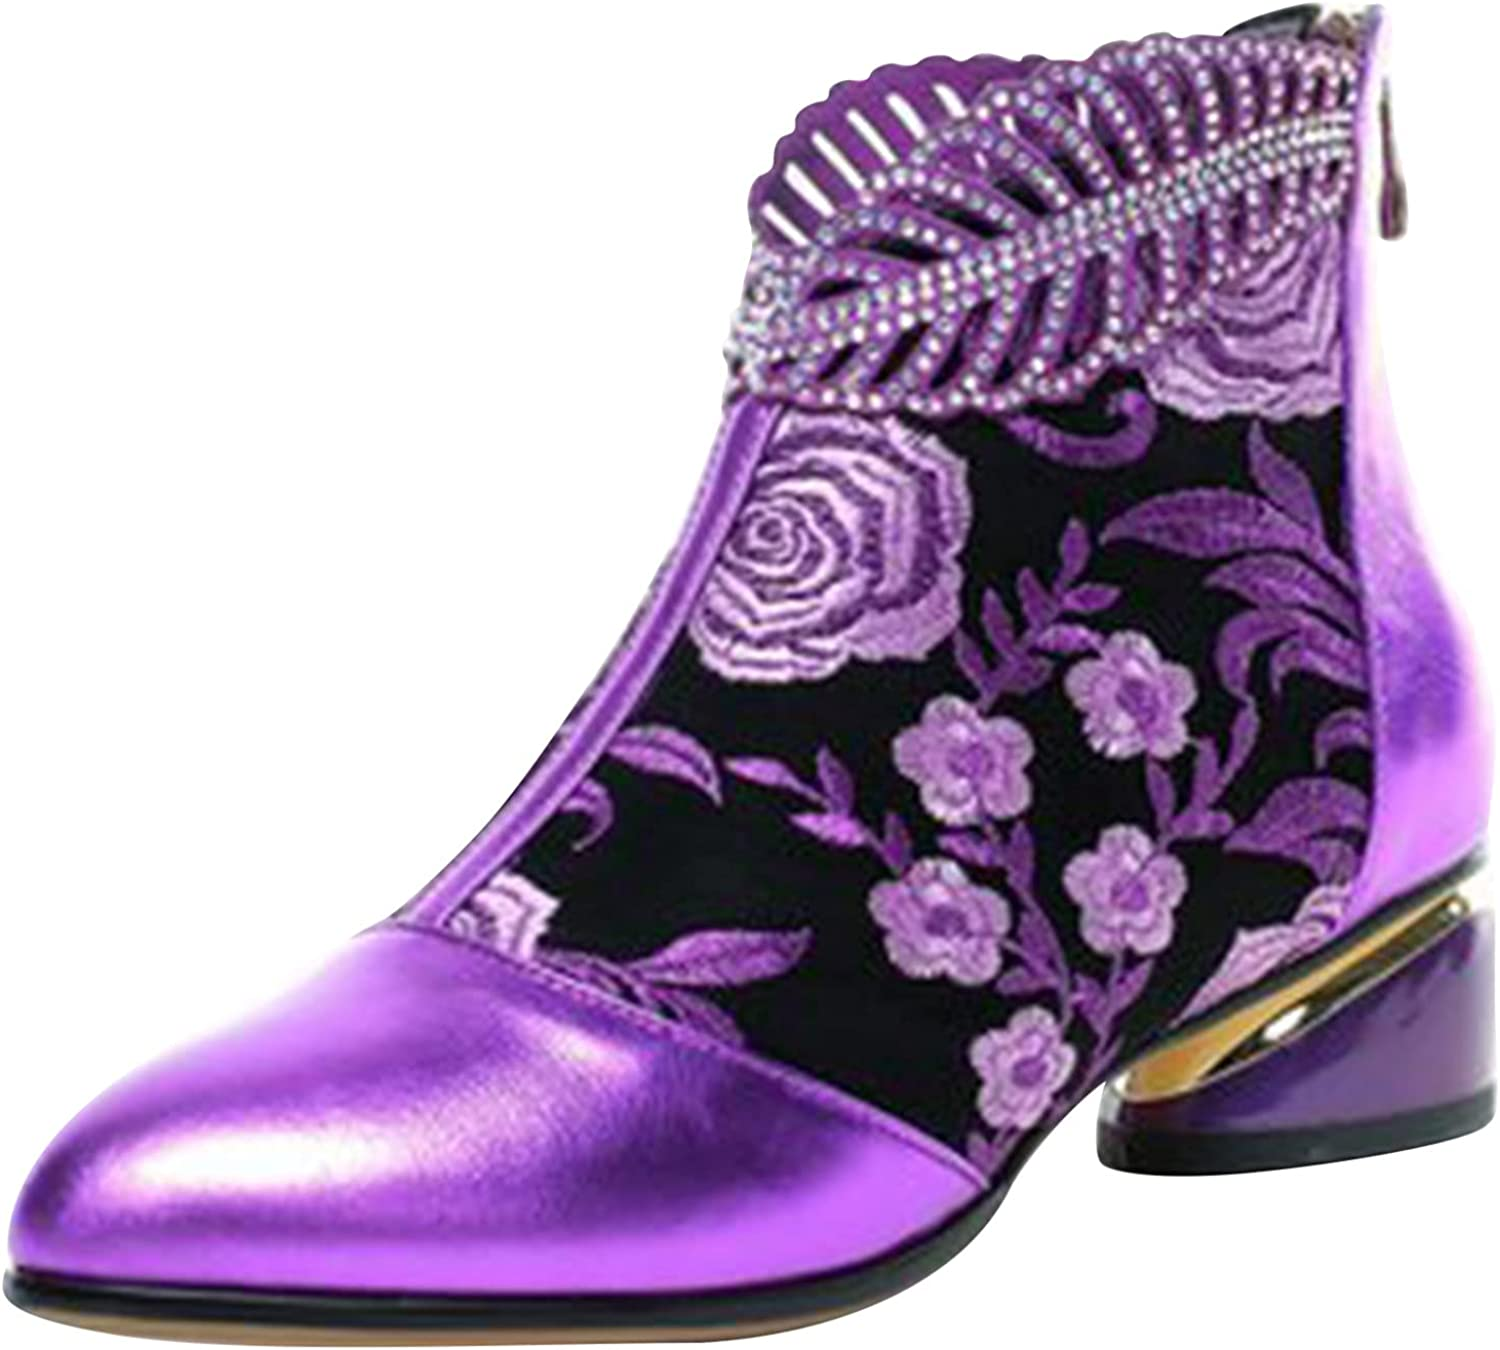 Boots for Women,Western Boots for Women Ankle Booties Women's Pointed Toe Ankle Bootie Vintage Embroidery Zipper Chunky Heel Short Naked Boots with Heel,Motorcycle Boots